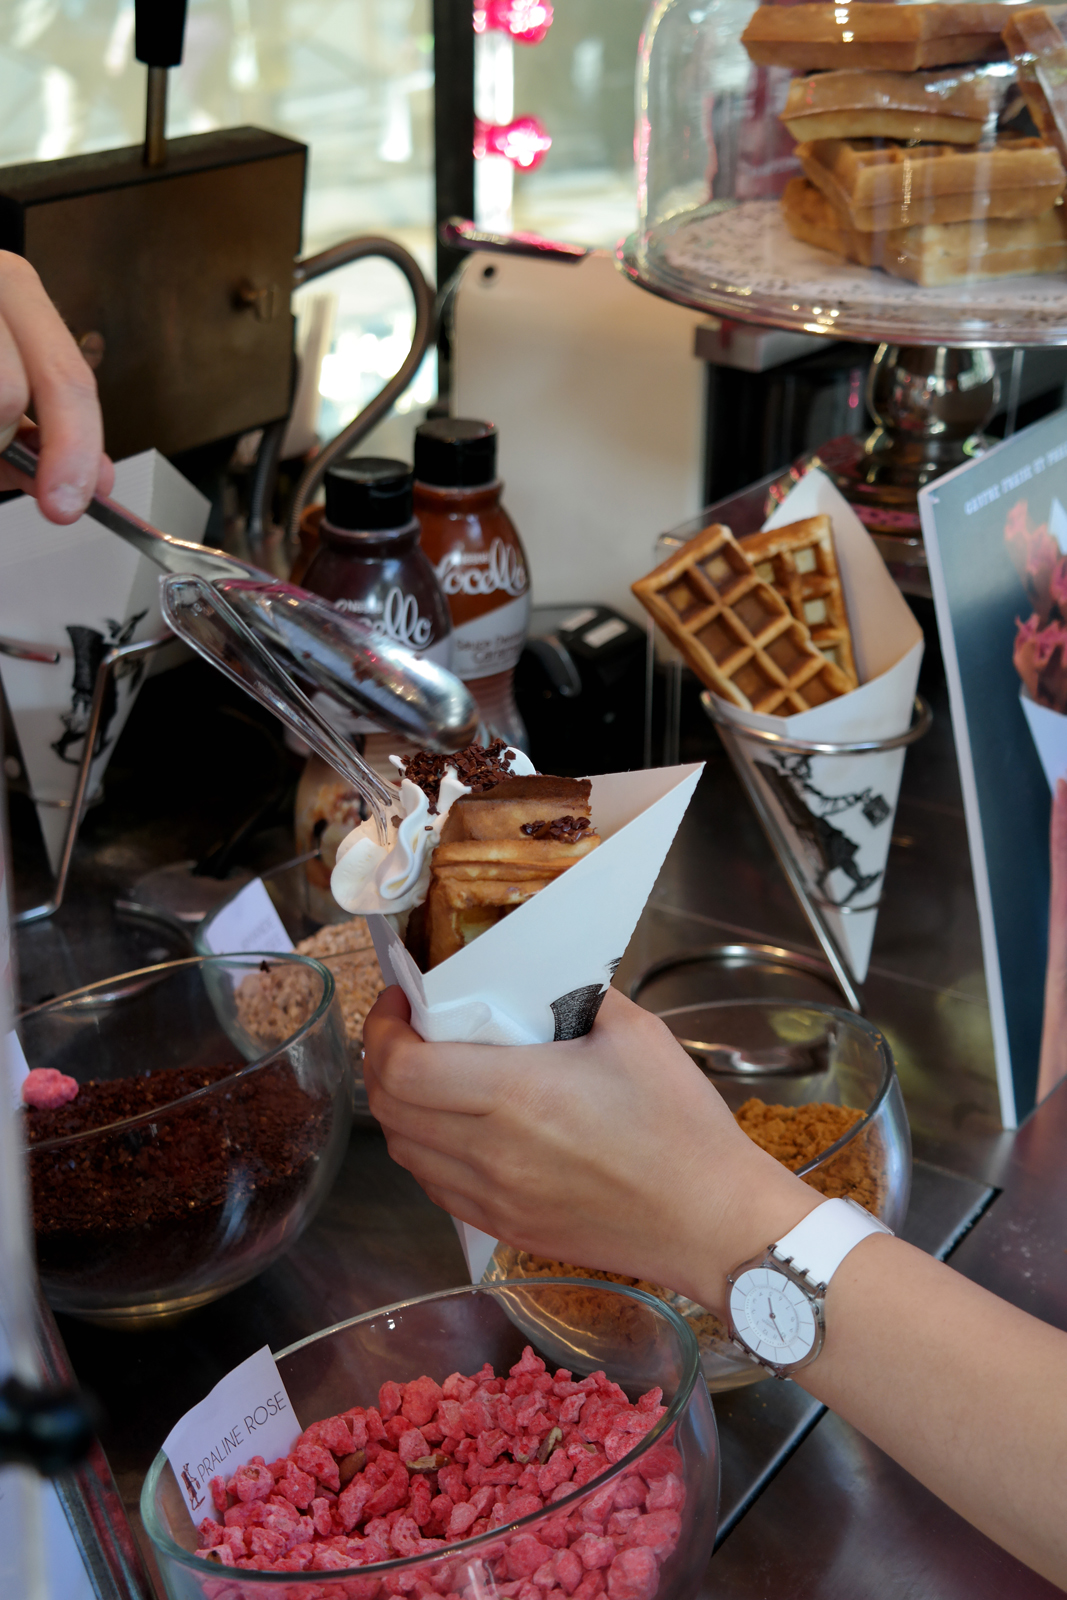 es-Oublieurs-gaufre-d-antan-sucrée-chocolat-chantilly-by-Ange-Macias-Kiosque-Gourmand-150-ans-Printemps-Boulevard-Haussmann-dessert-street-food-photo-by-united-states-of-paris-blog